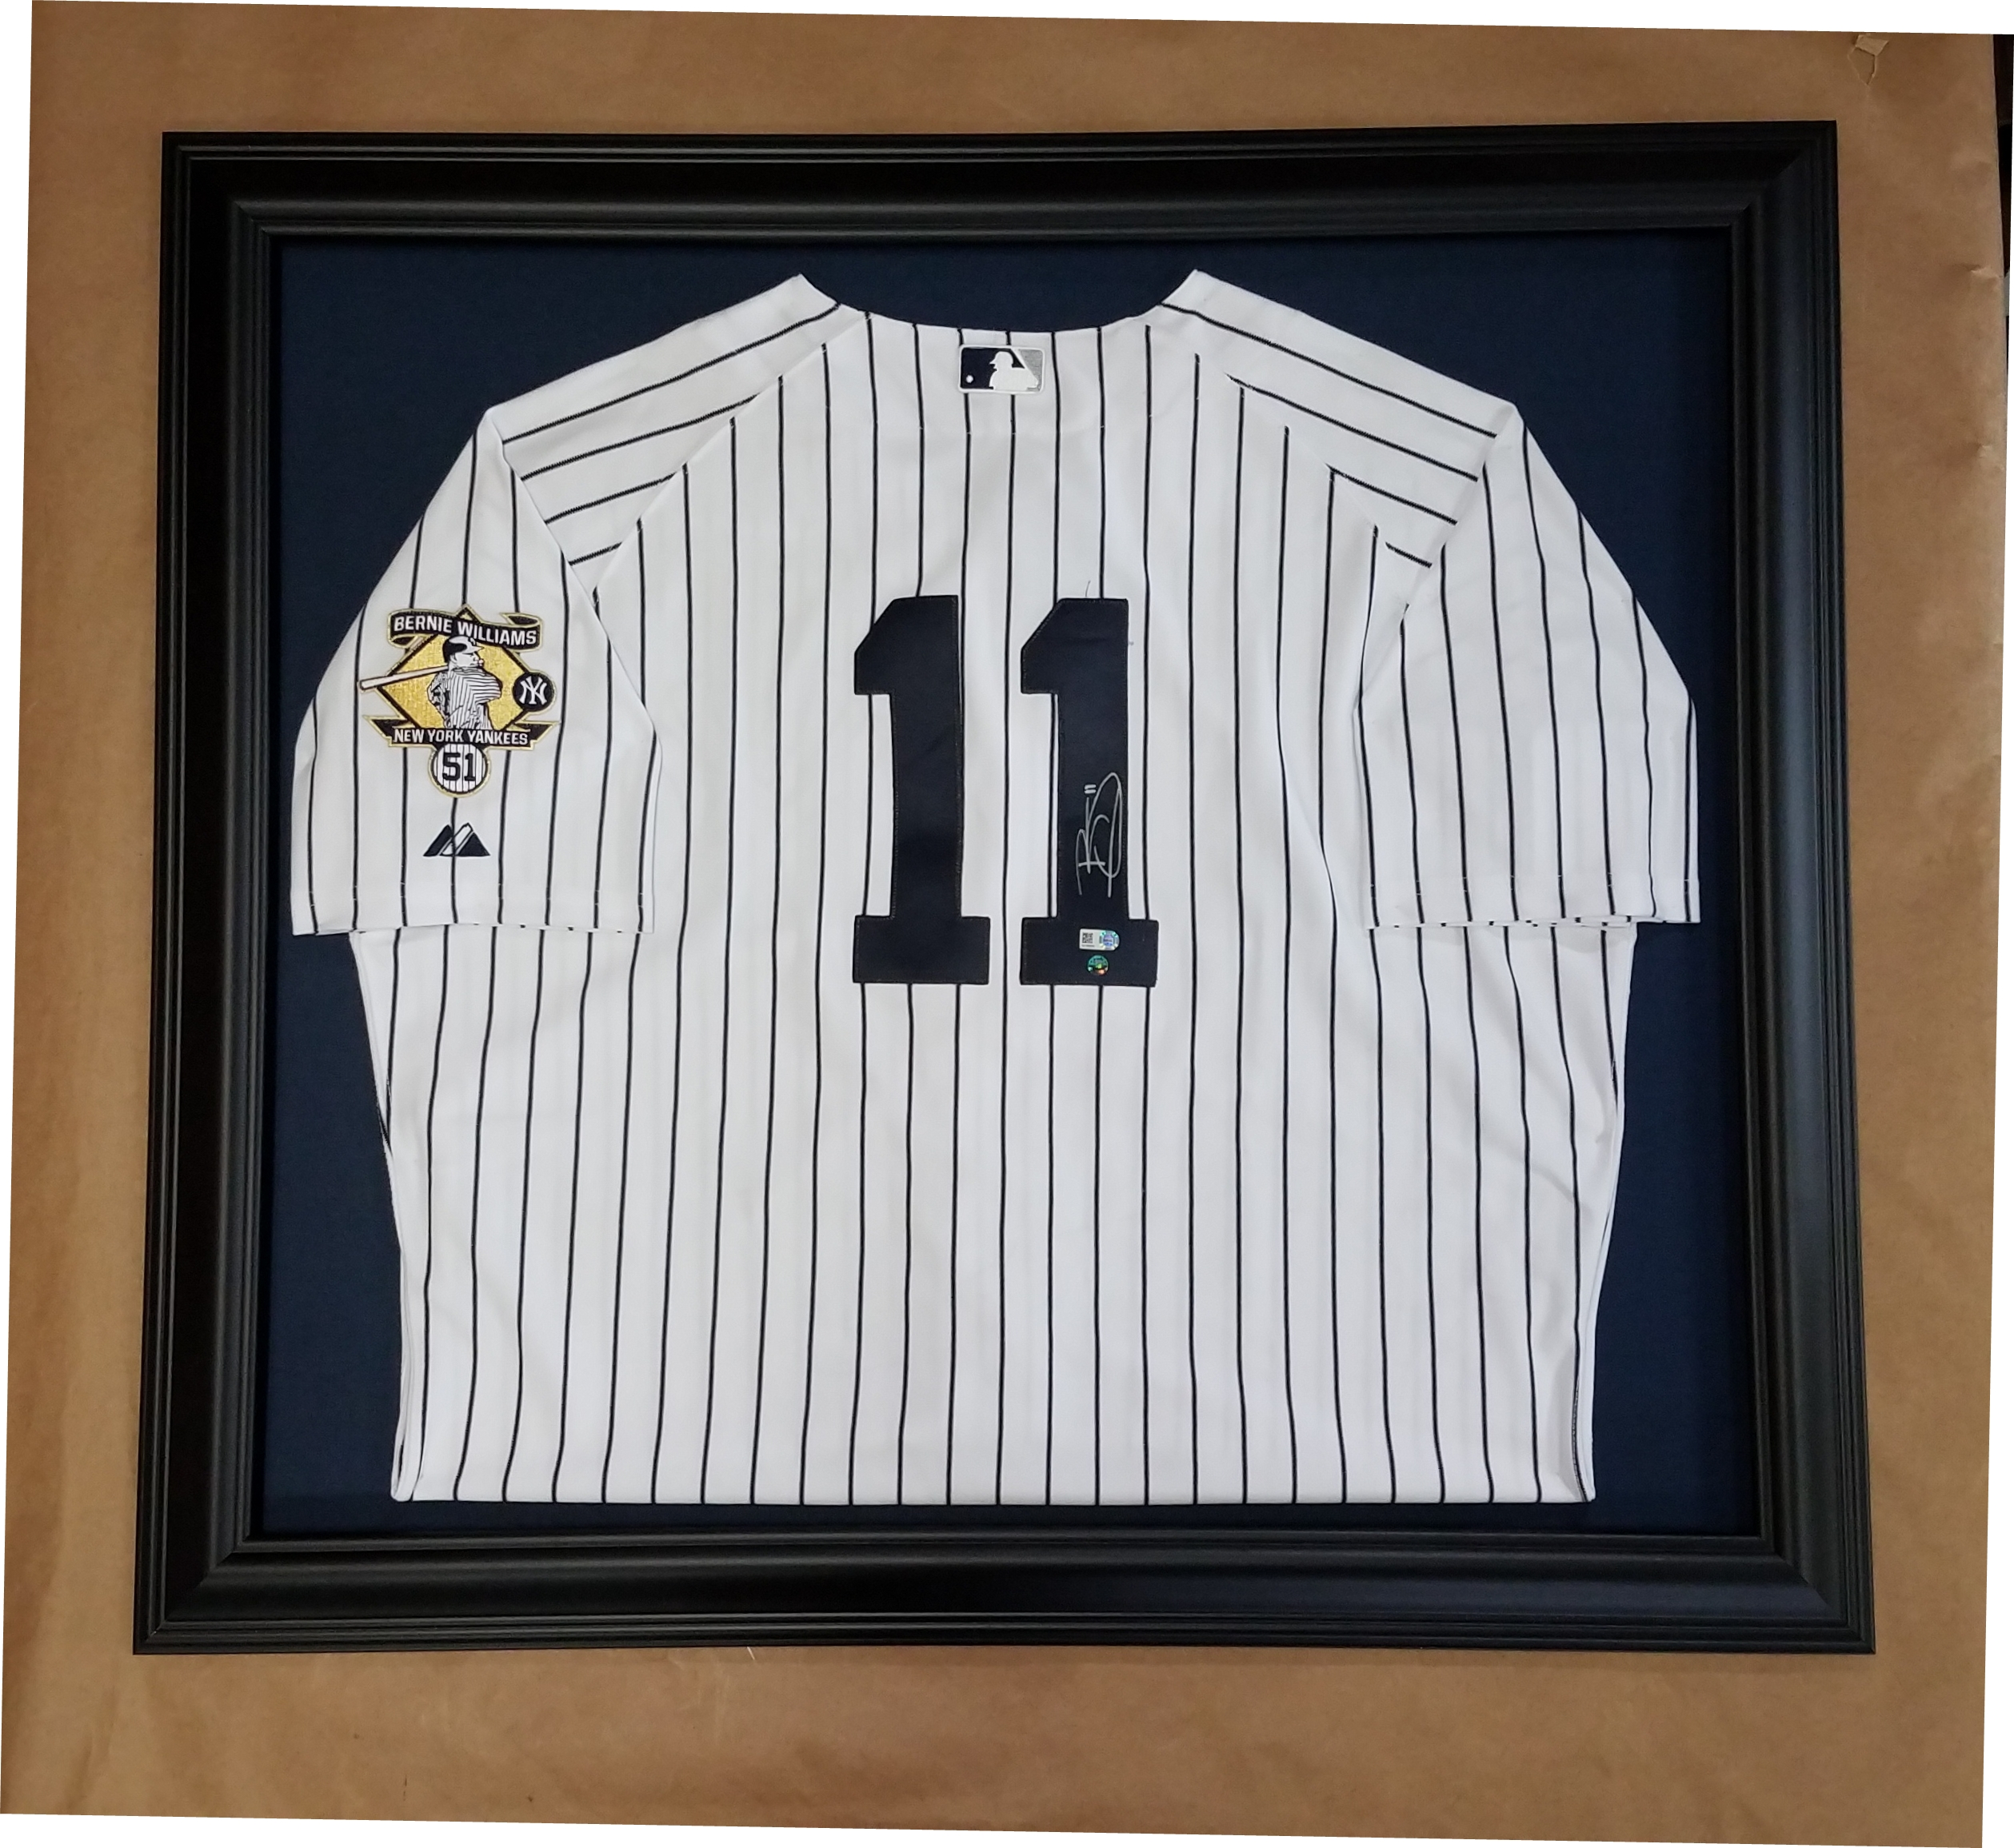 New York Yankees – Columbia Frame Shop